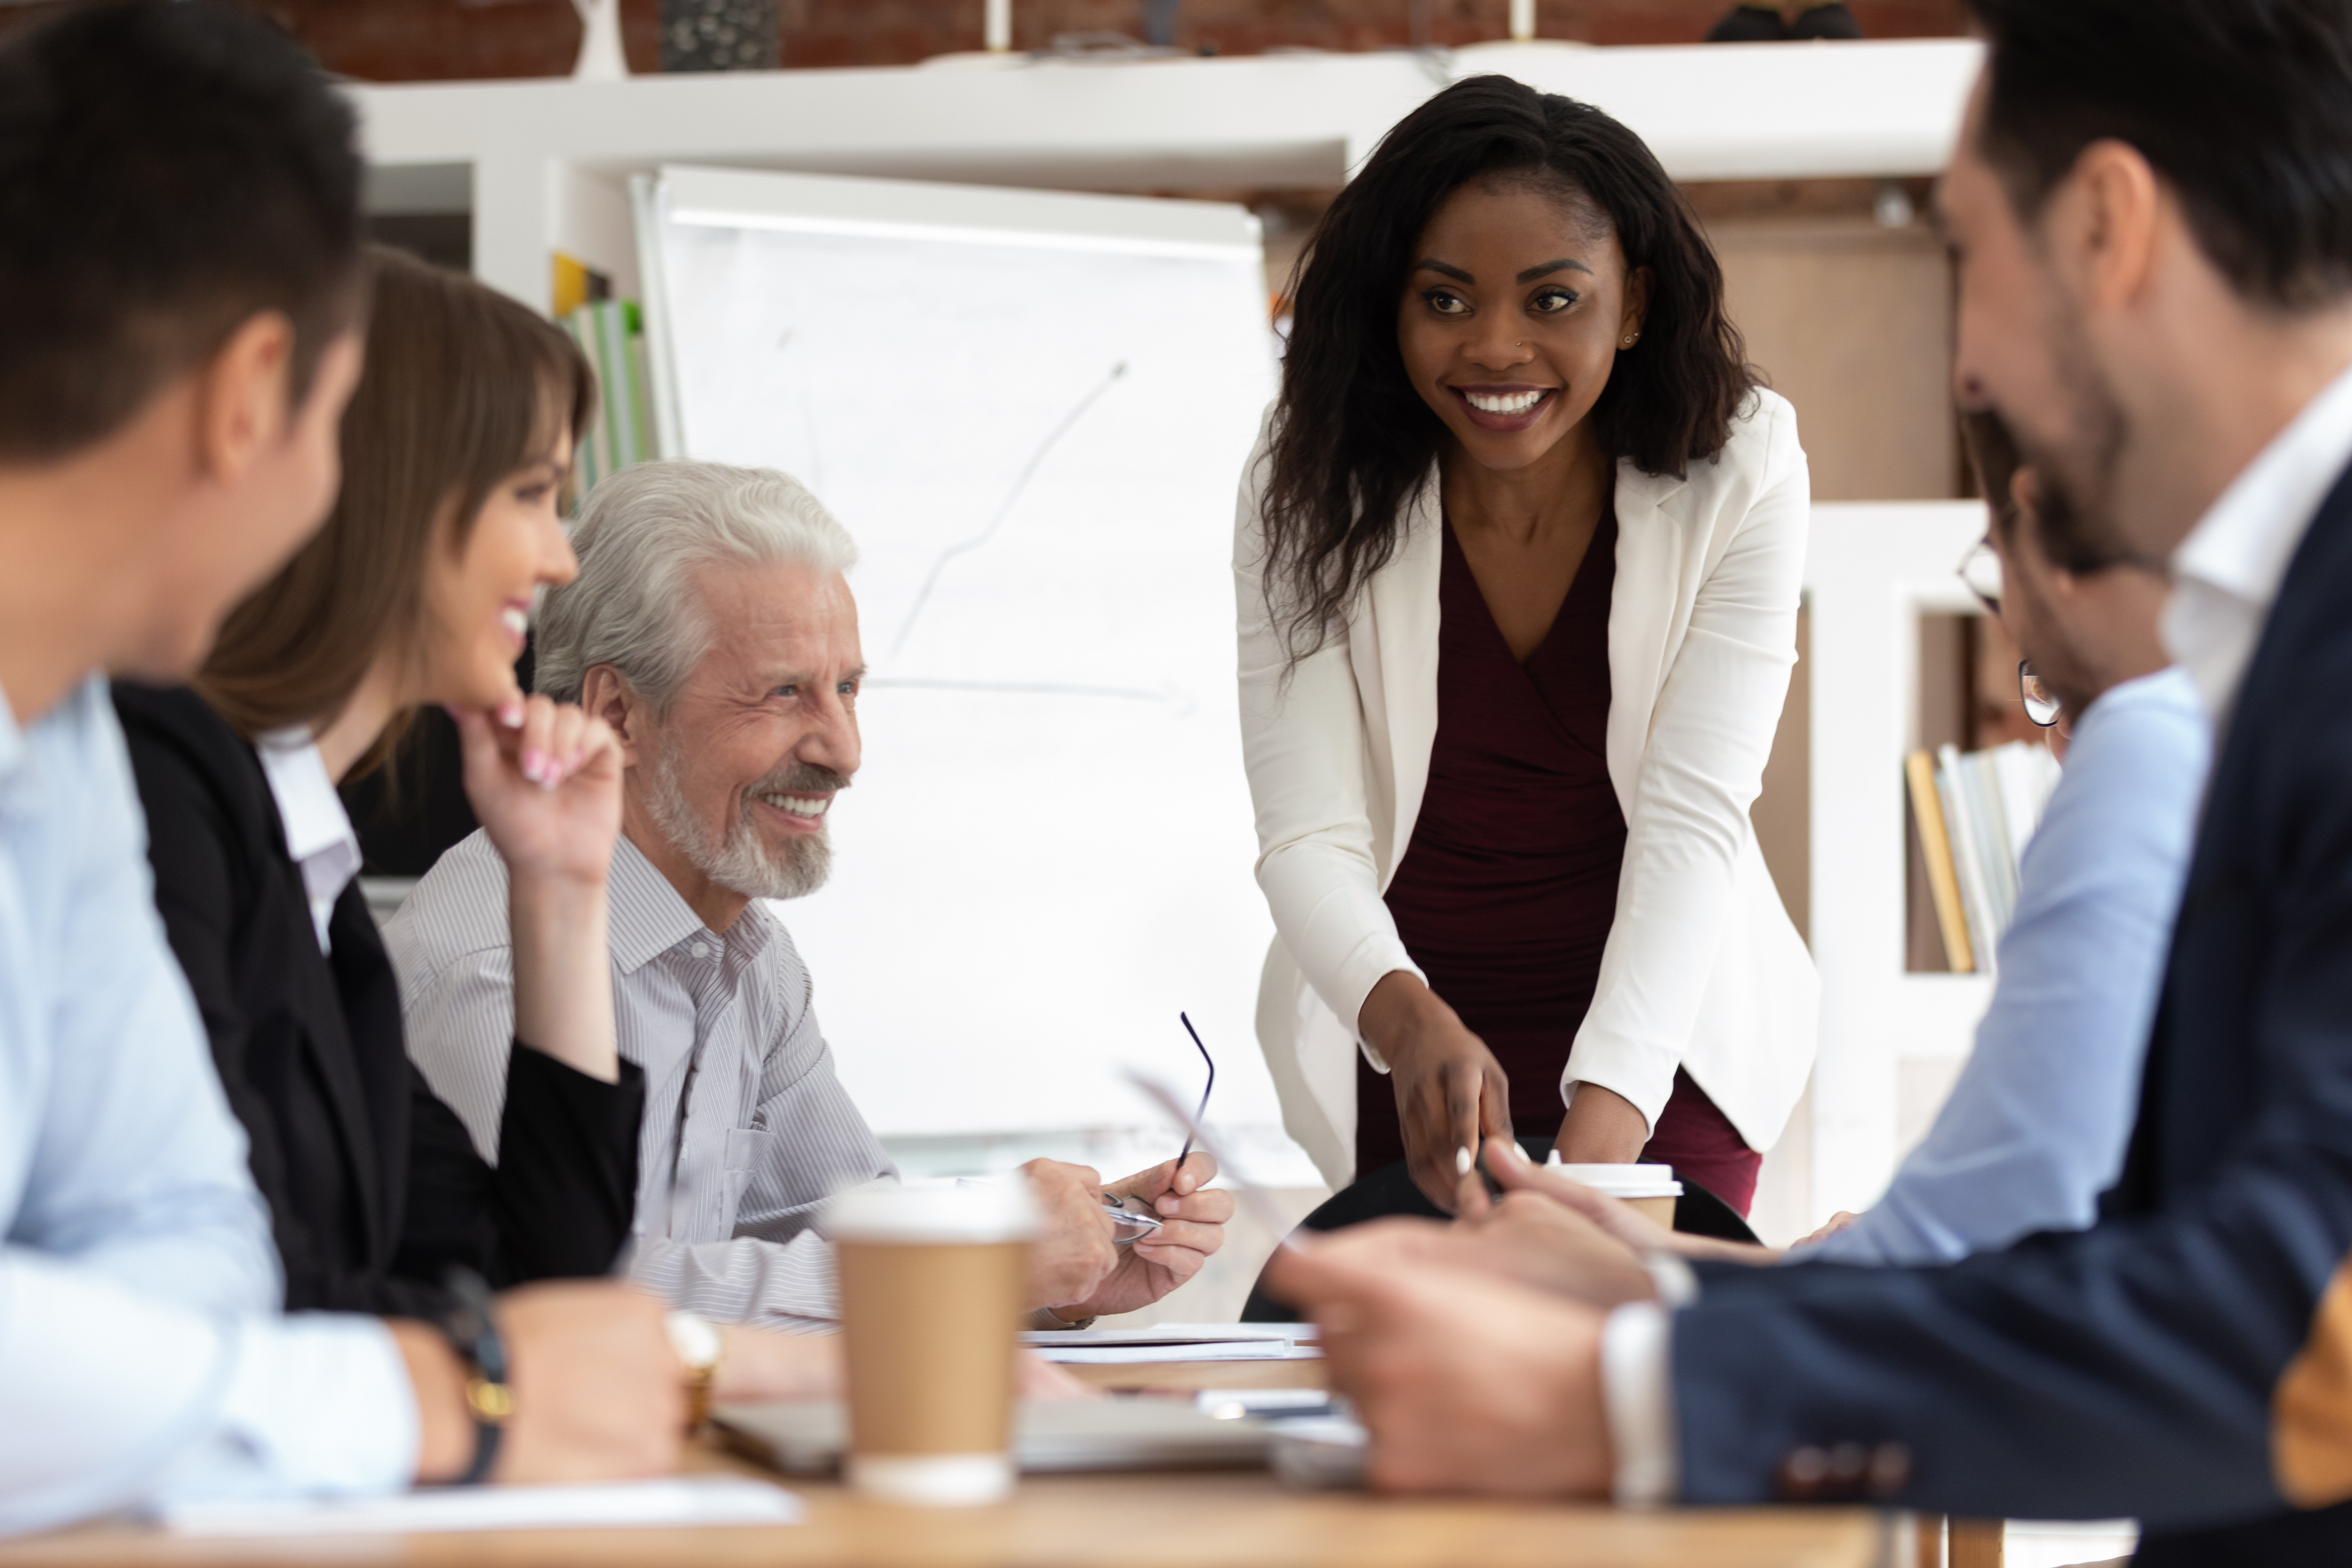 5 Steps to Assess Your Leadership Skills